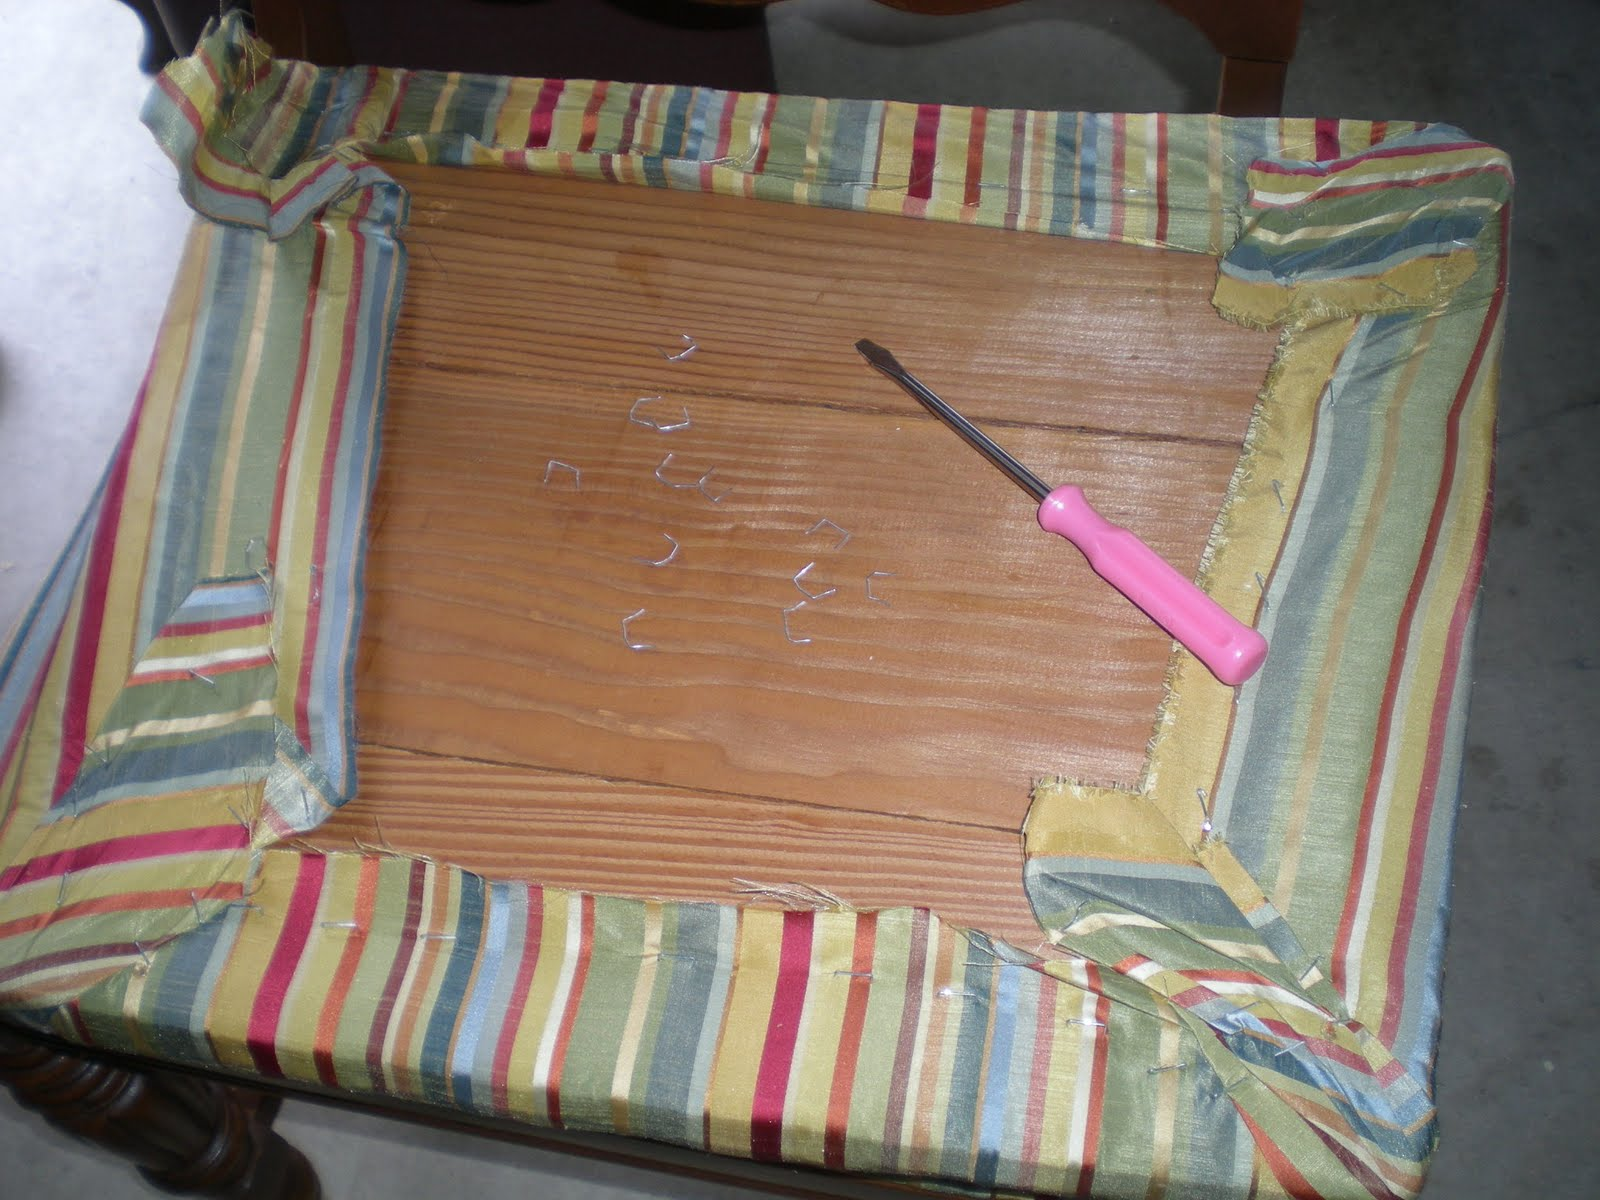 Diy how to reupholster a chair seat pad easy How To Reupholster A Chair  Image Titled Reupholster A Dining  . Recover Chair Pad. Home Design Ideas